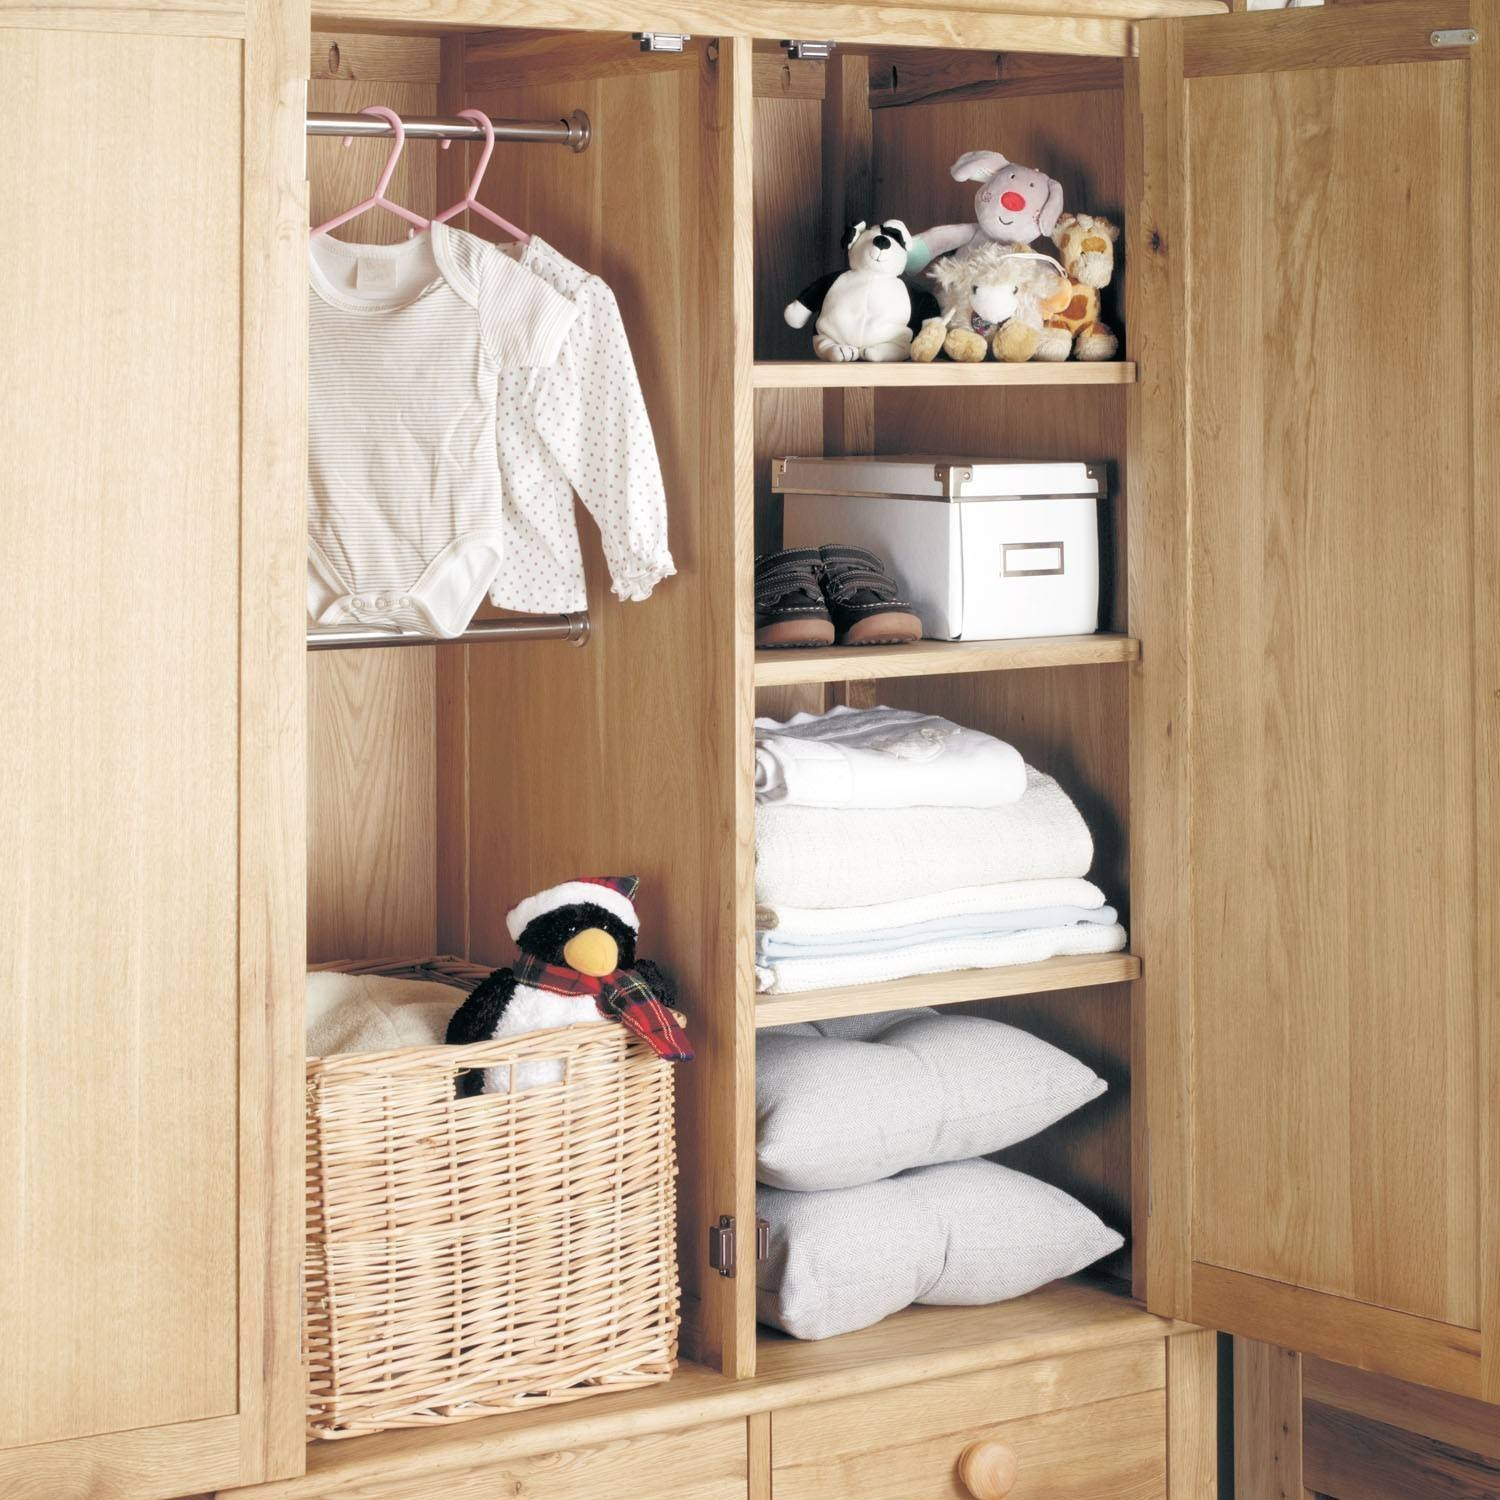 30 Best Childrens Wardrobes With Drawers And Shelves inside Single Wardrobe With Drawers And Shelves (Image 1 of 30)